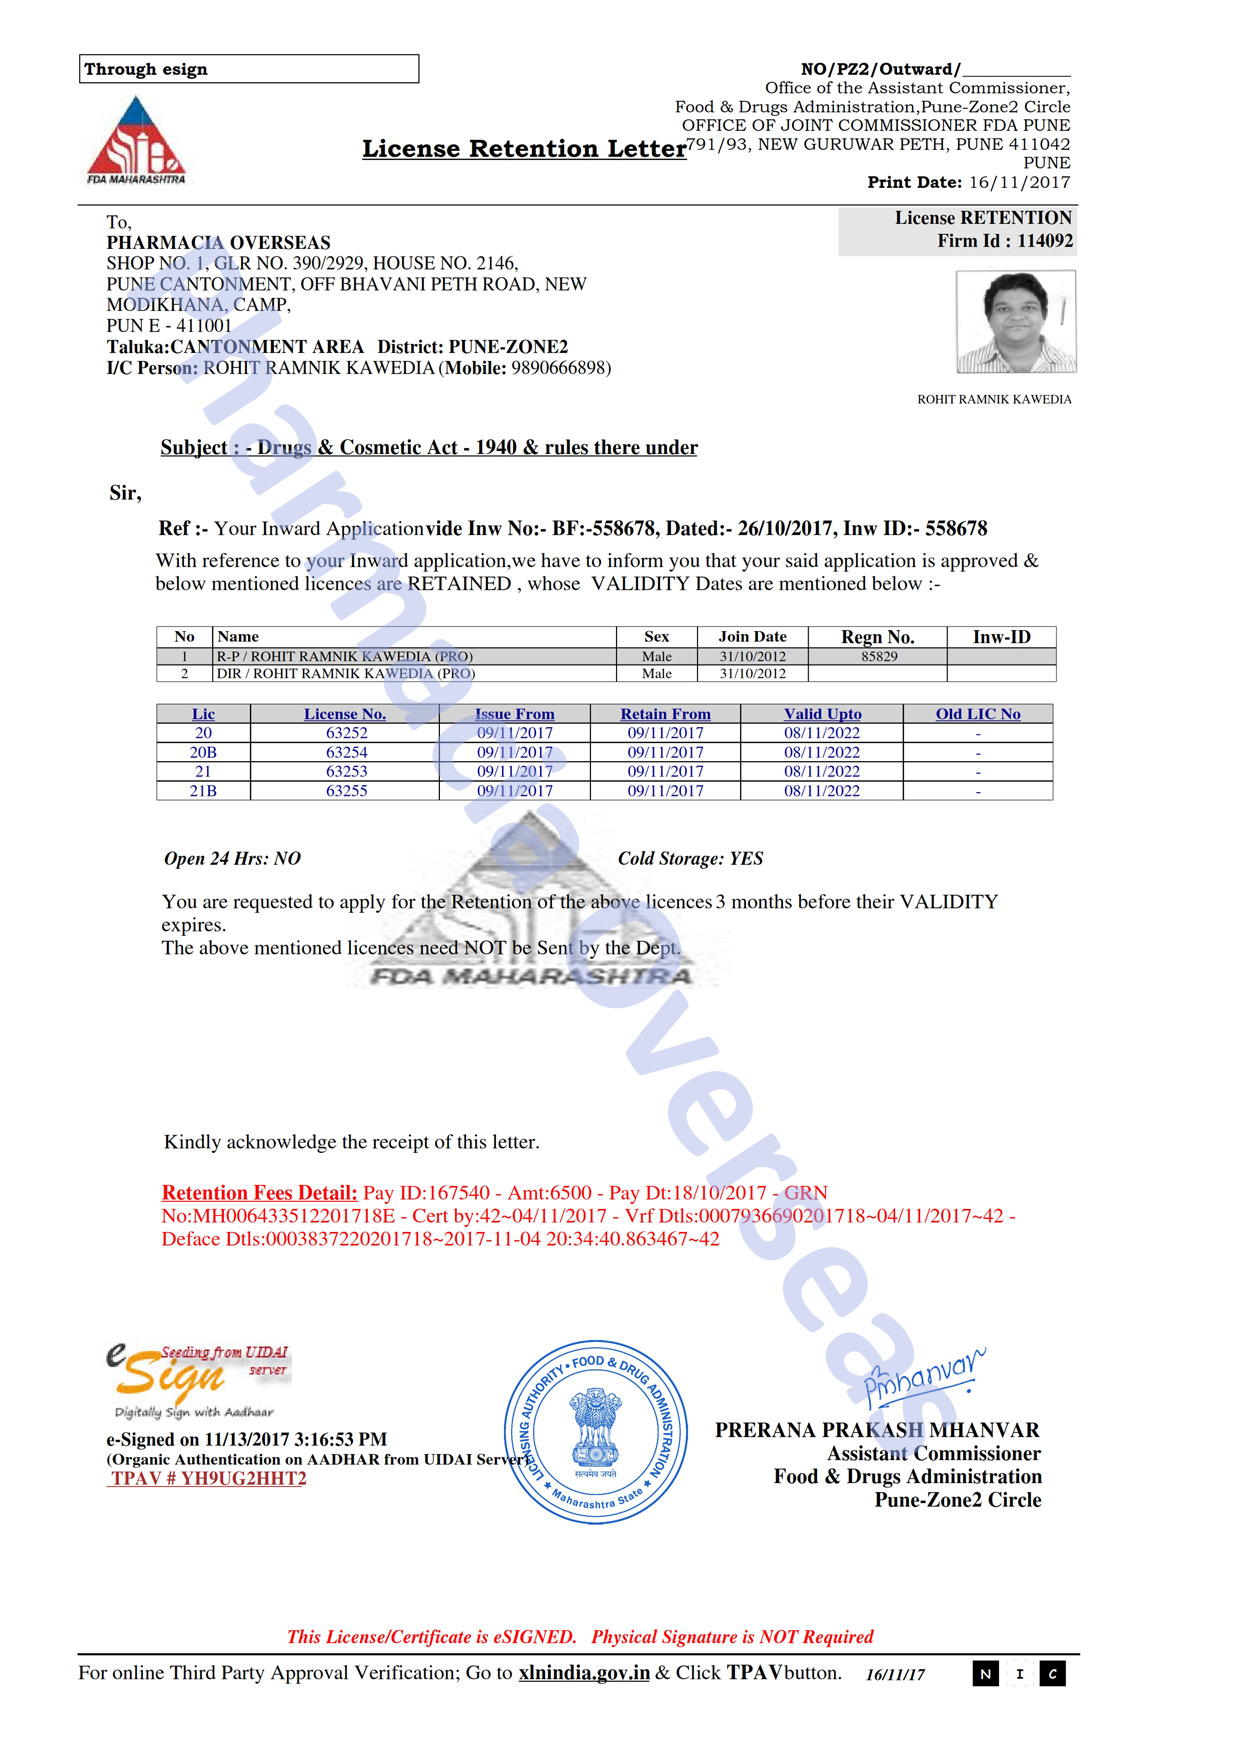 Pharmacia overseas certificates licenses thecheapjerseys Image collections